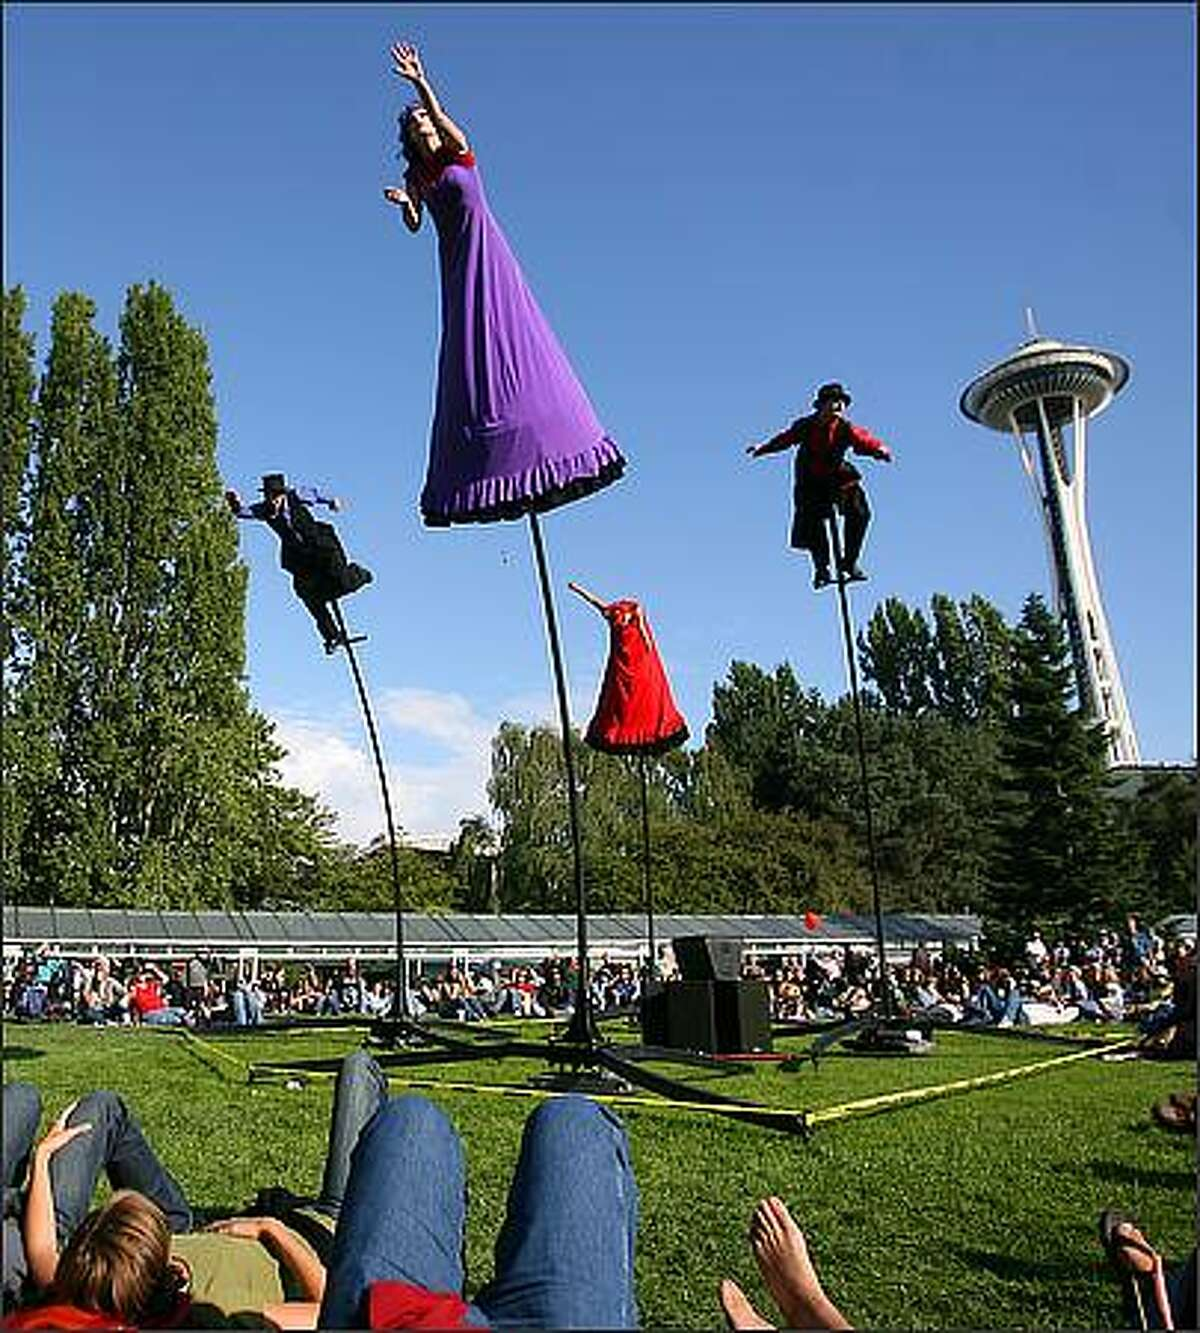 The Austrailian performing arts group Strange Fruit perform their routine Strange Fruit is a Melbourne-based performing arts company that produces and performs a style of work that fuses theater, dance and circus.